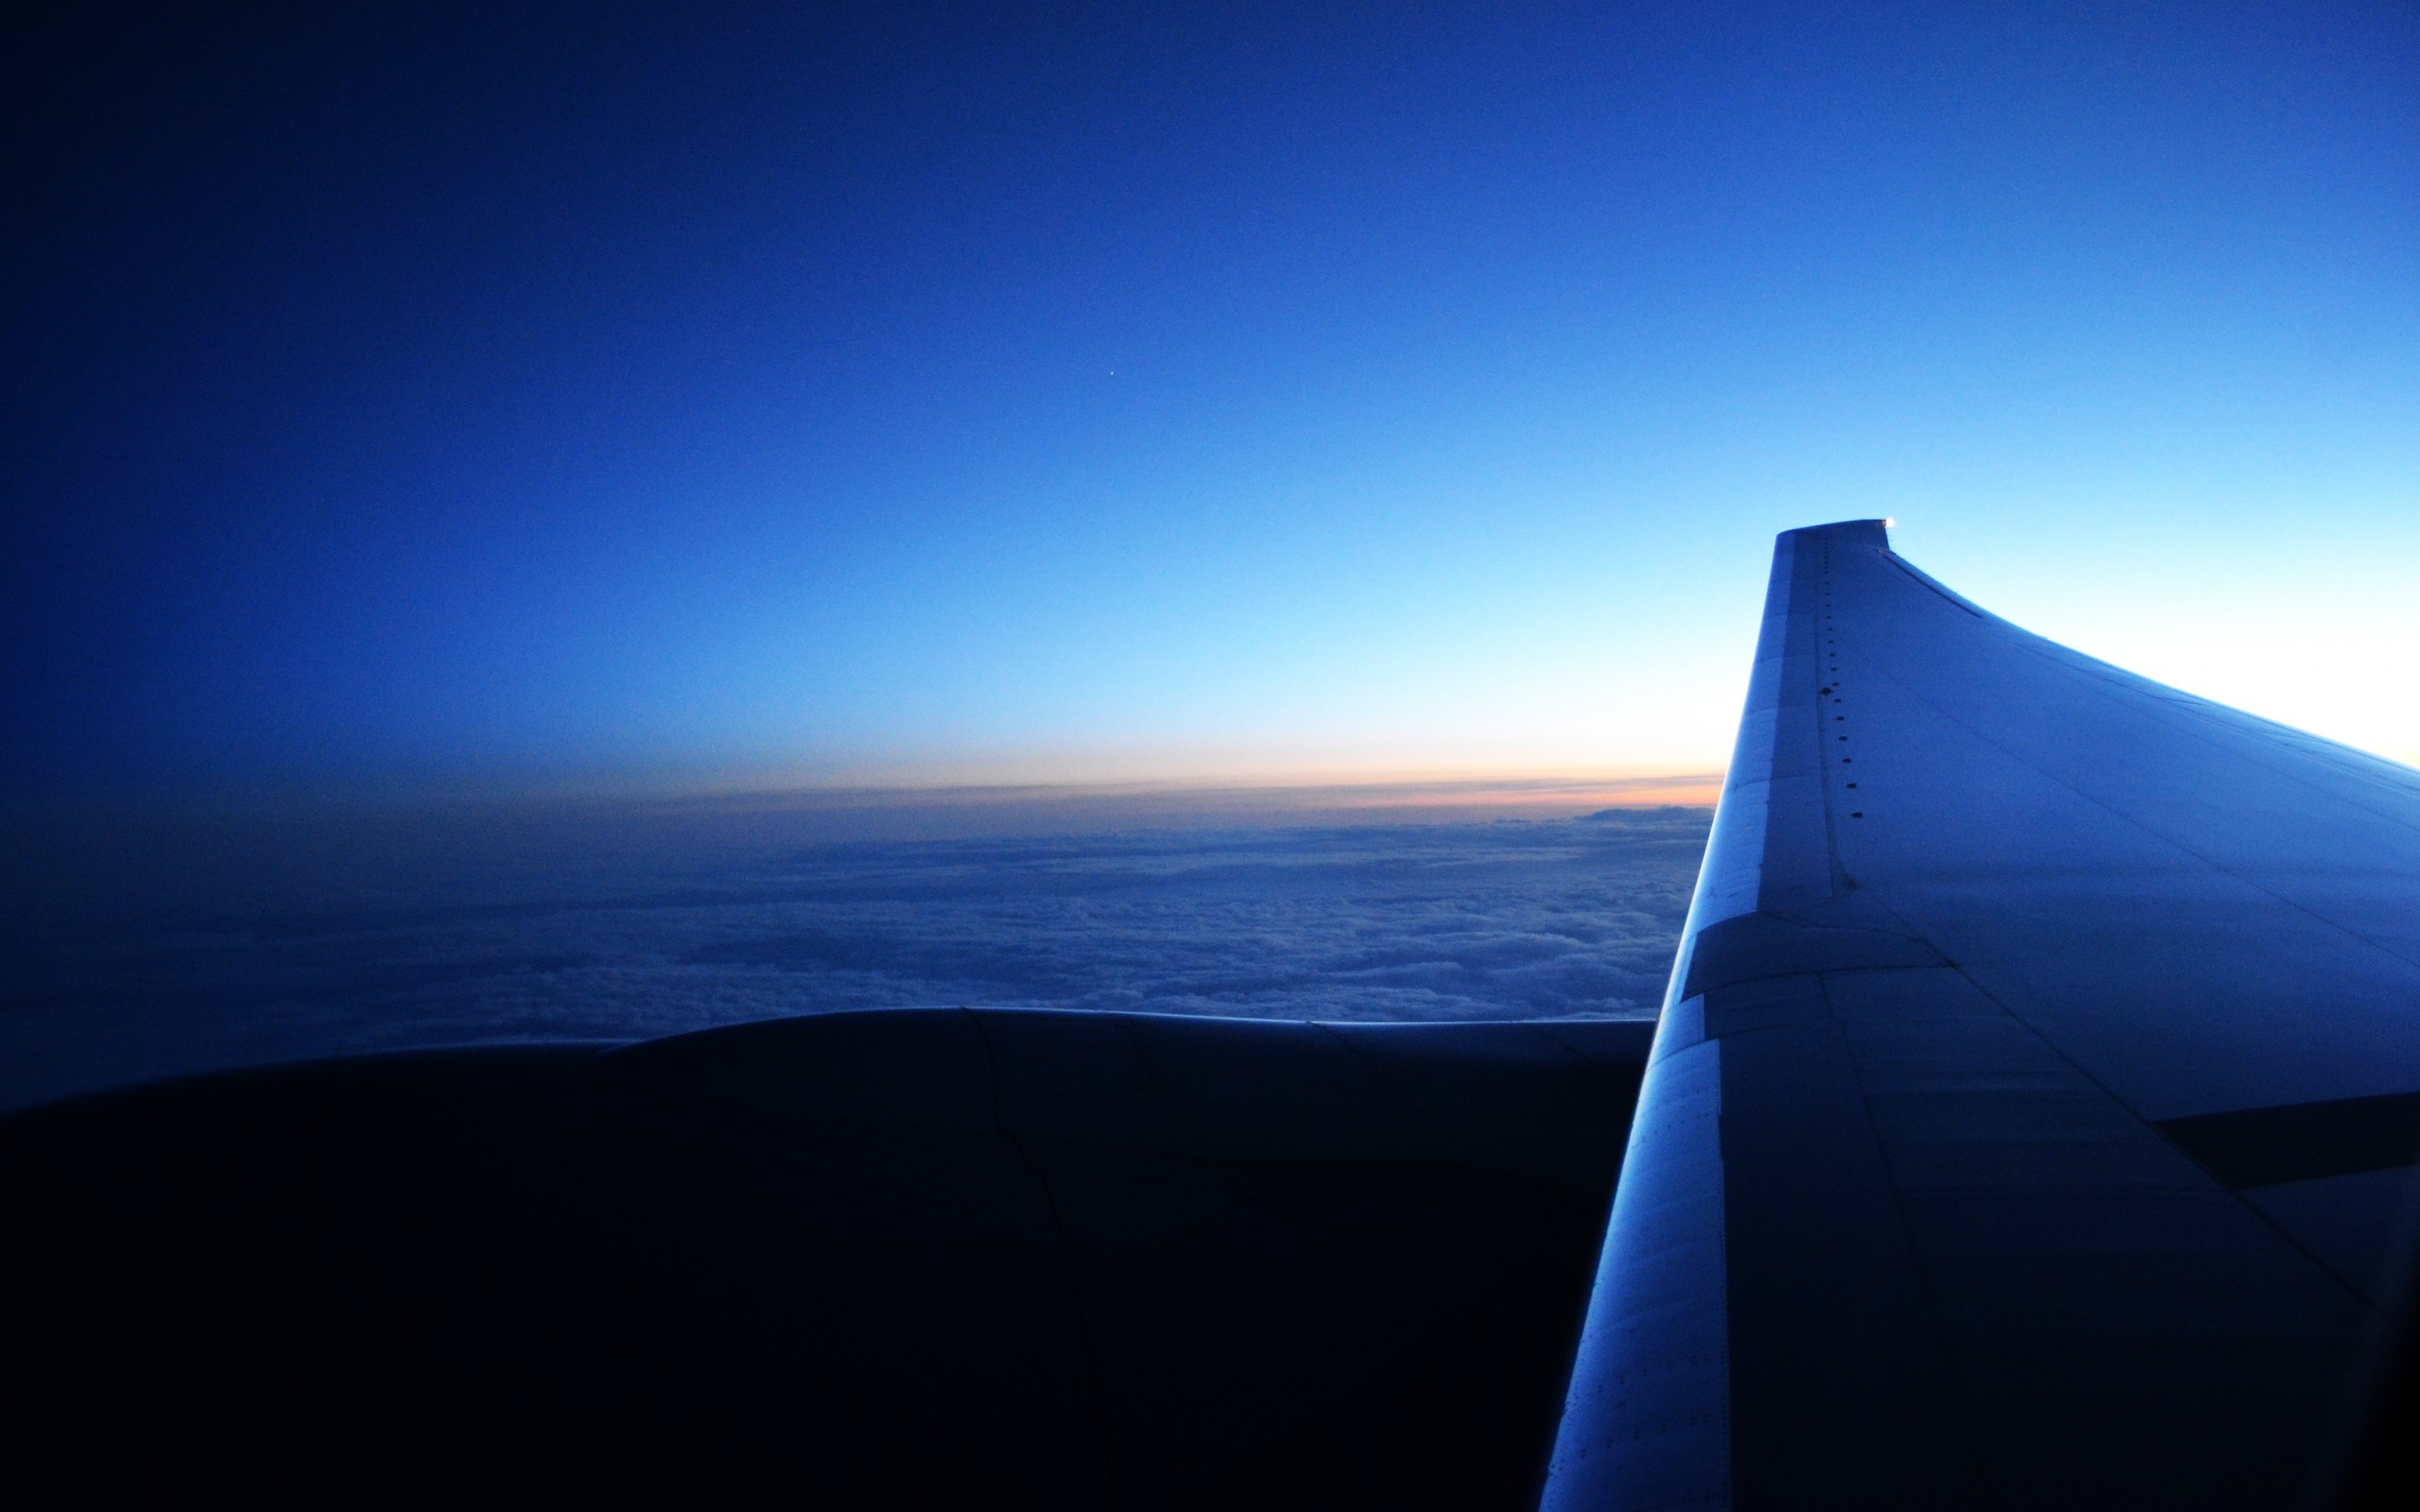 … boeing 777 wing wallpapers boeing 777 wing stock photos …